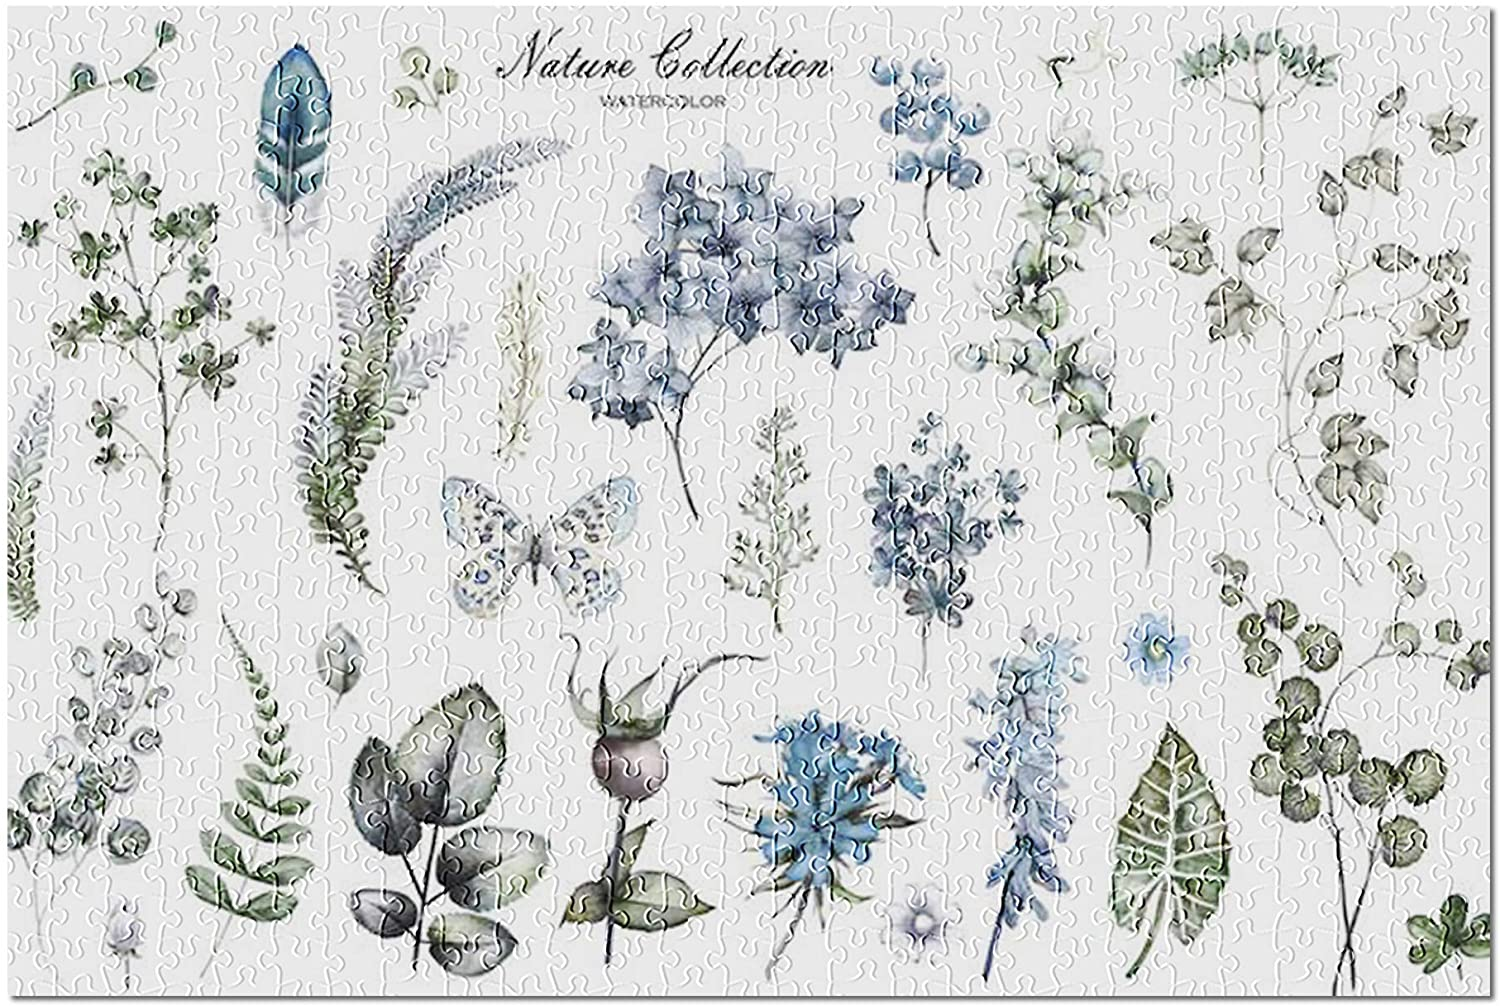 Watercolor Illustration Set of Wildflowers, Herbs, Leaves on White 9014426 (Premium 500 Piece Jigsaw Puzzle for Adults, 13x19)